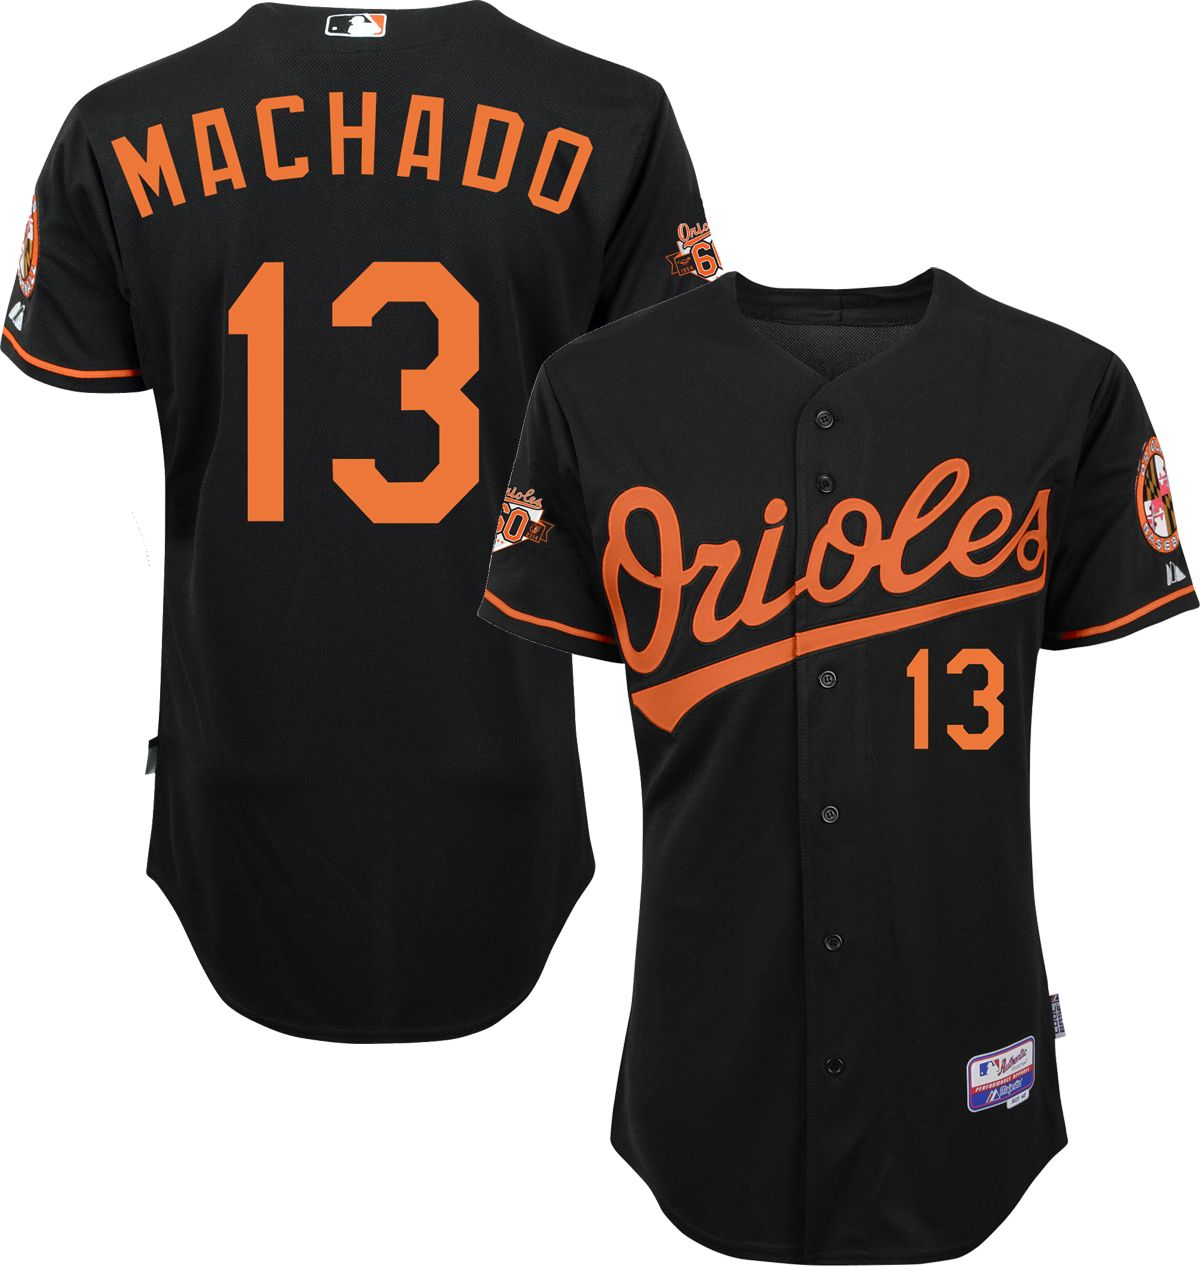 c2c453d5f ... Mens Authentic Baltimore Orioles Manny Machado 13 C Orioles 13 Manny  Machado White Cooperstown Collection Mesh Batting Practice Jersey Mens  baseball ...